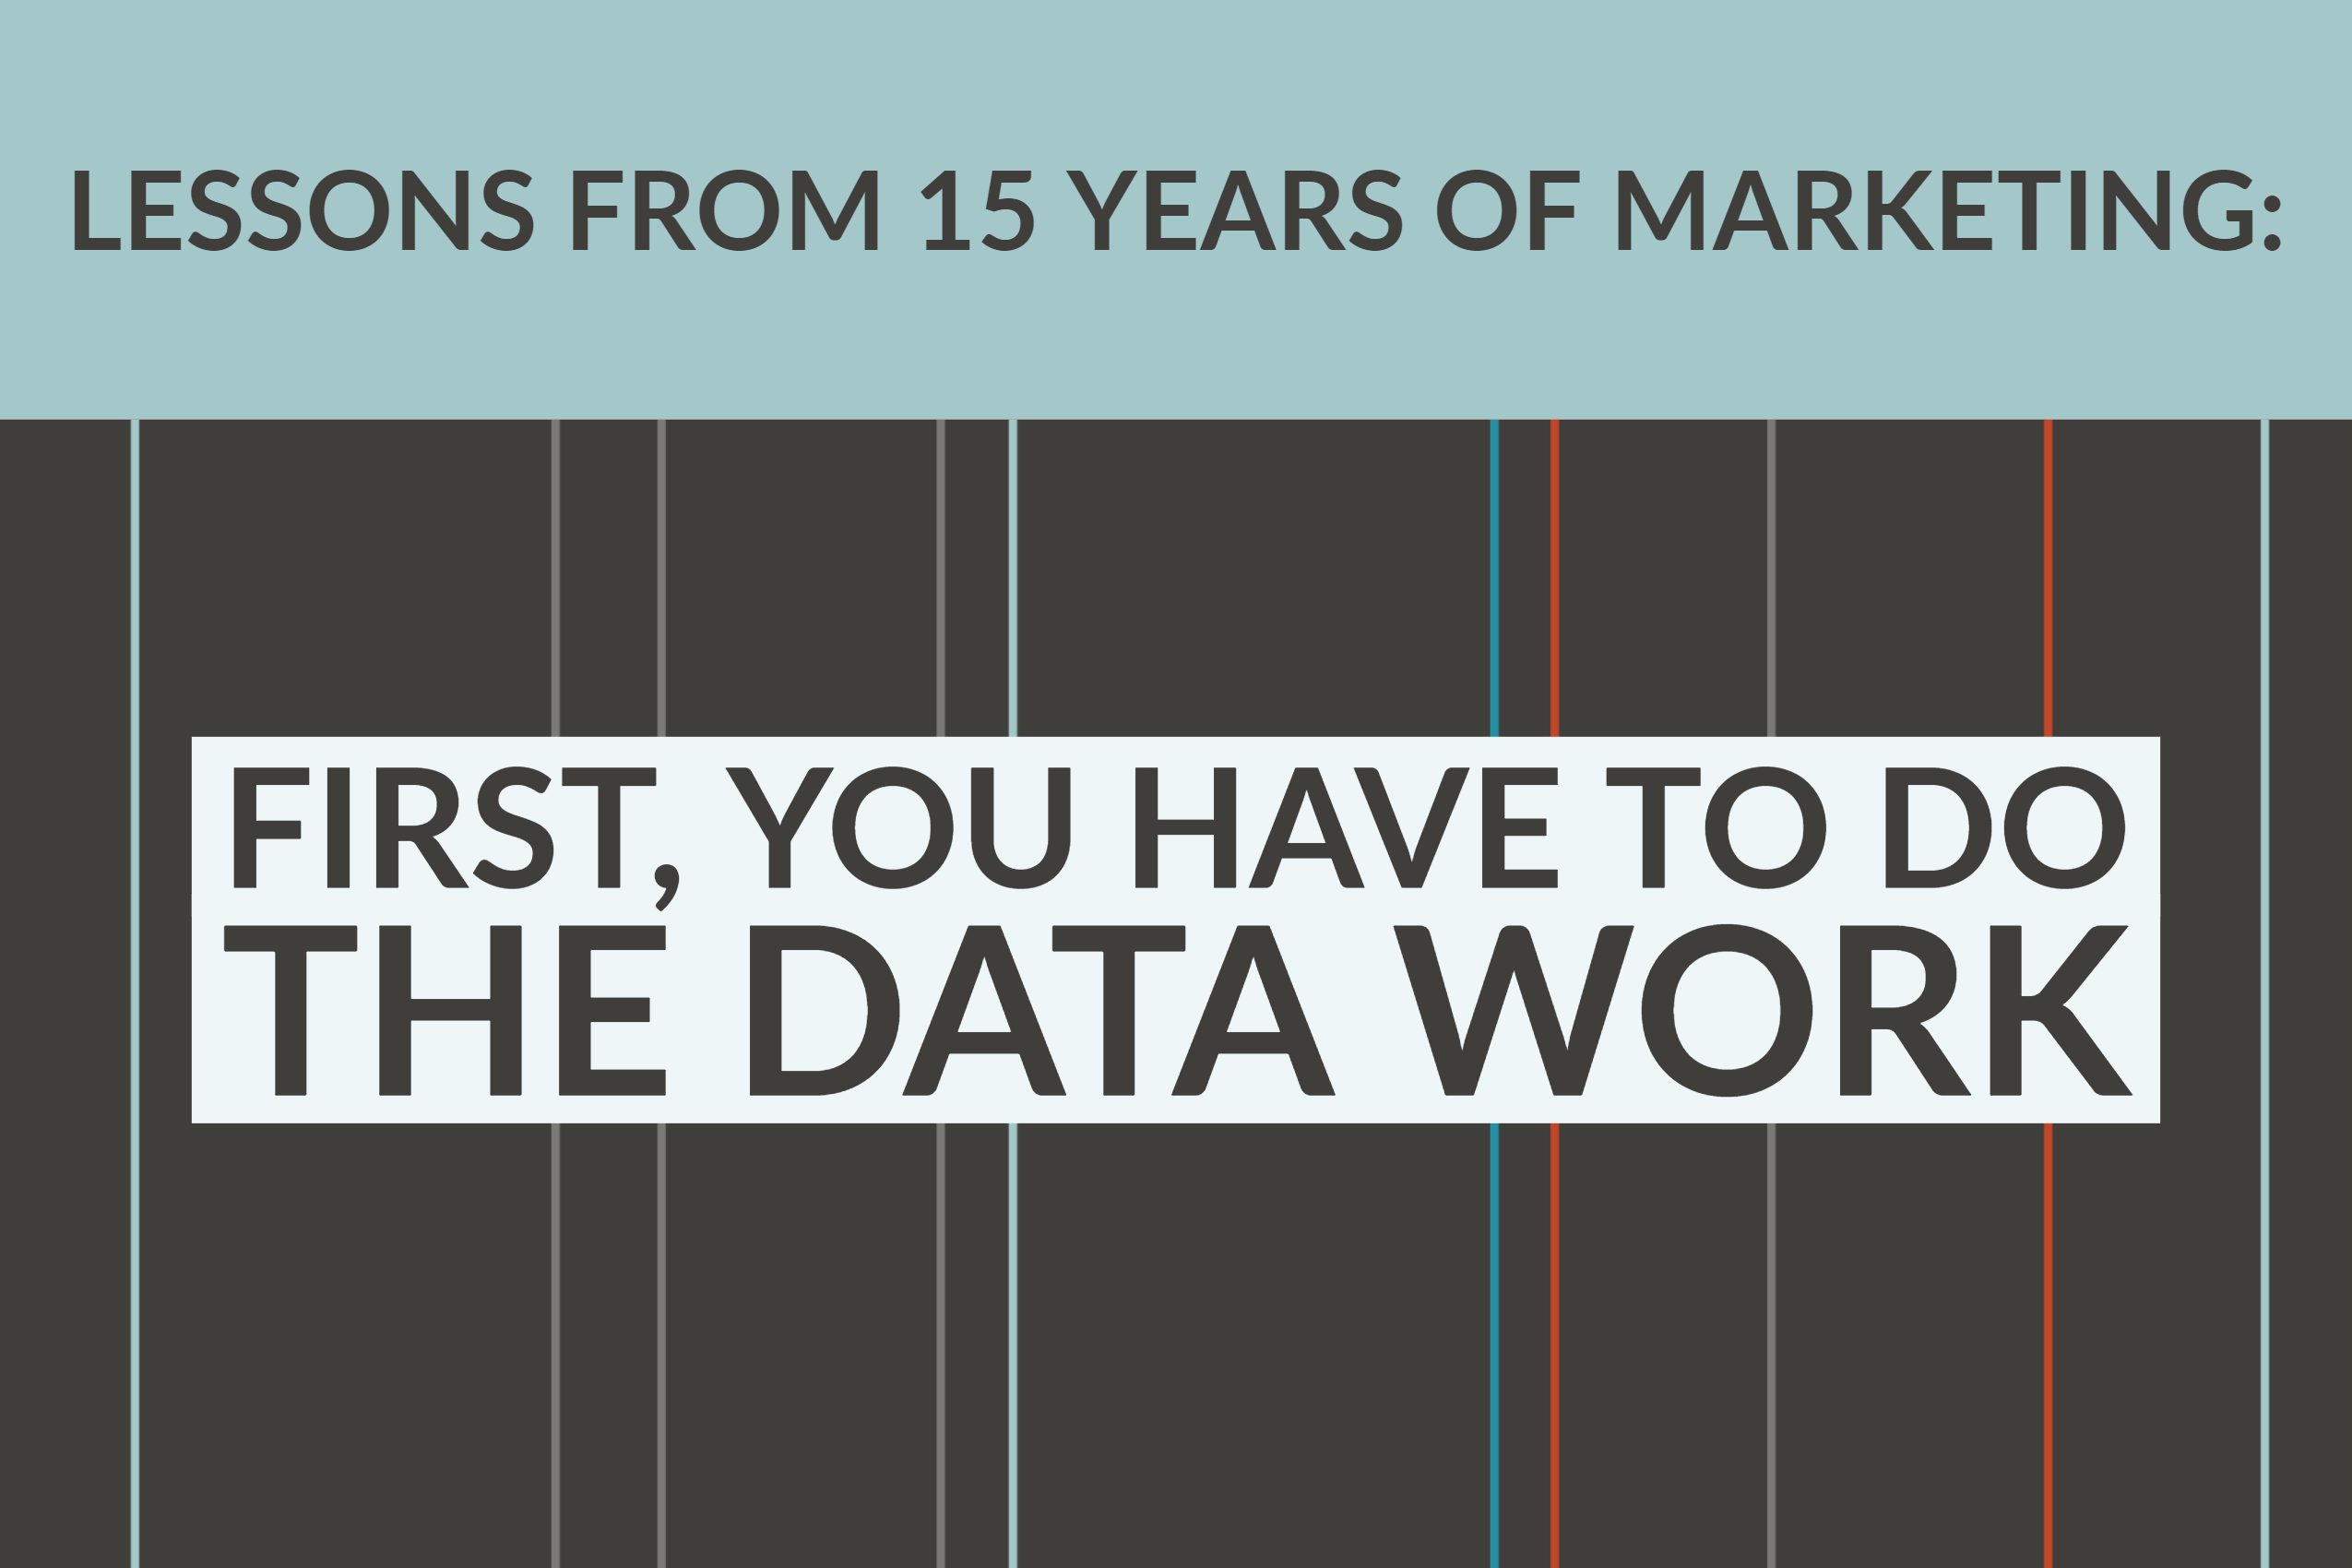 Lessons From 15 Years_ First, You Have To Do The Data Work